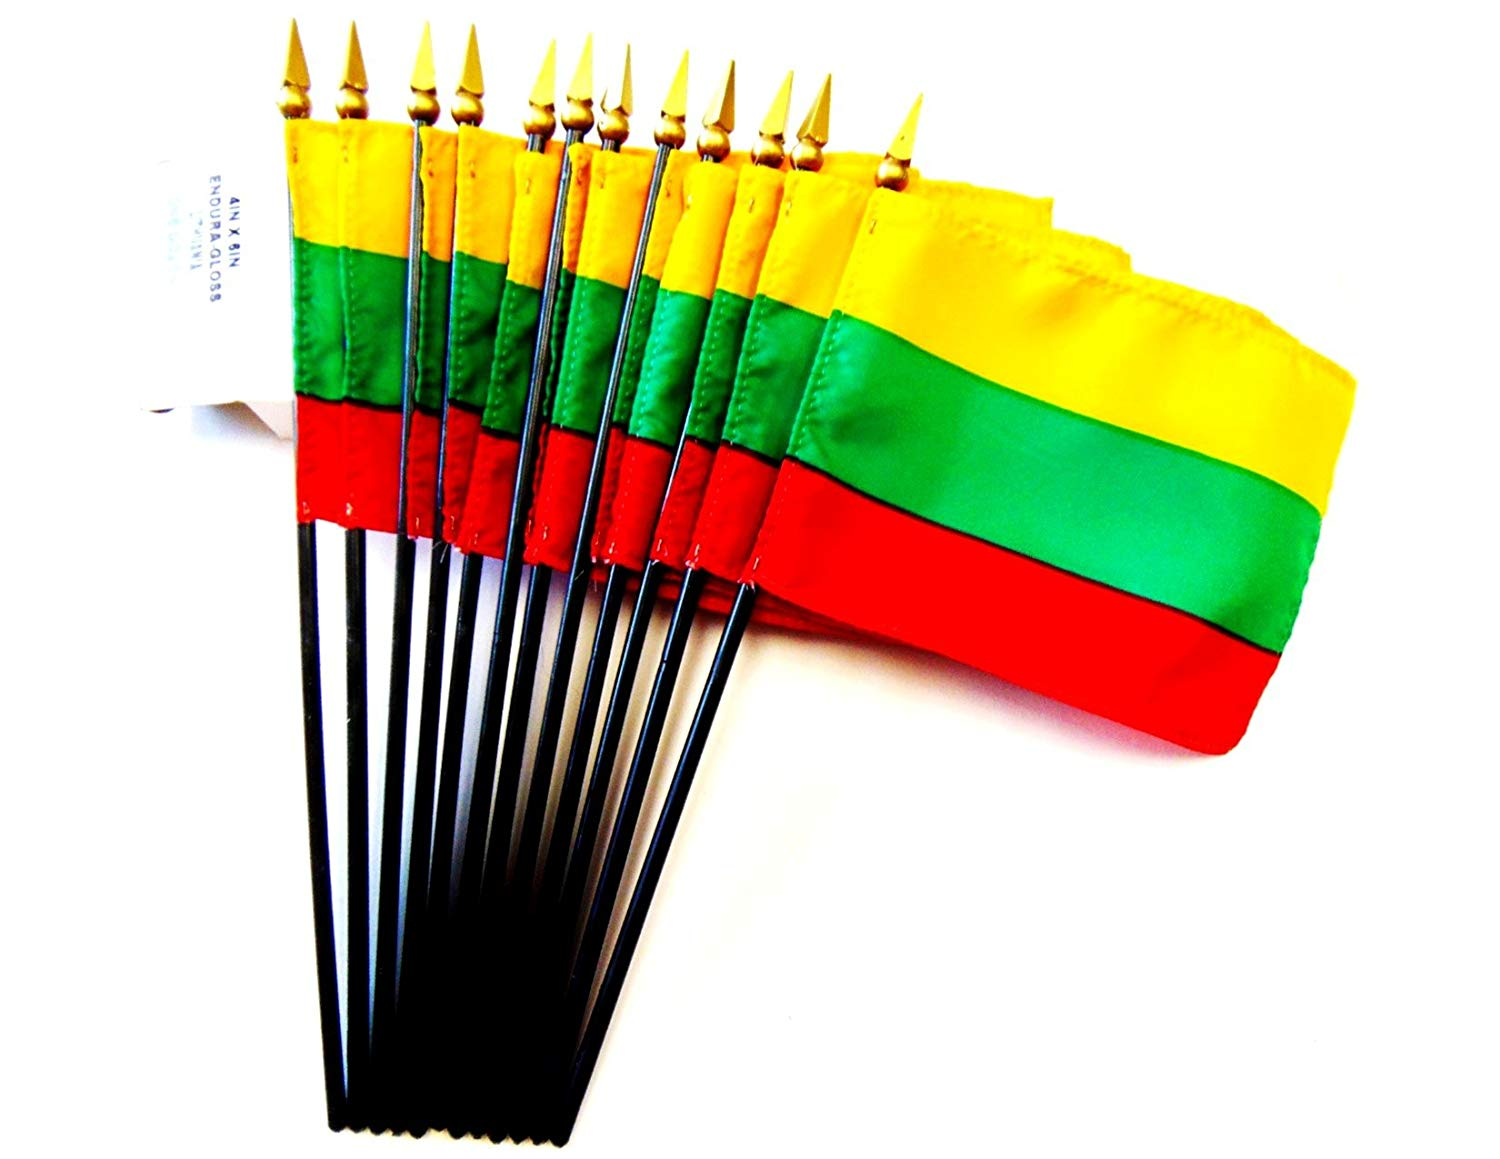 "MADE IN USA!! Box of 12 4""x6"" Lithuania Desk & Table Flags; 12 American Made Small Mini Lithuanian Flags in a Custom Made Cardboard Box Specifically Made for These Flags"